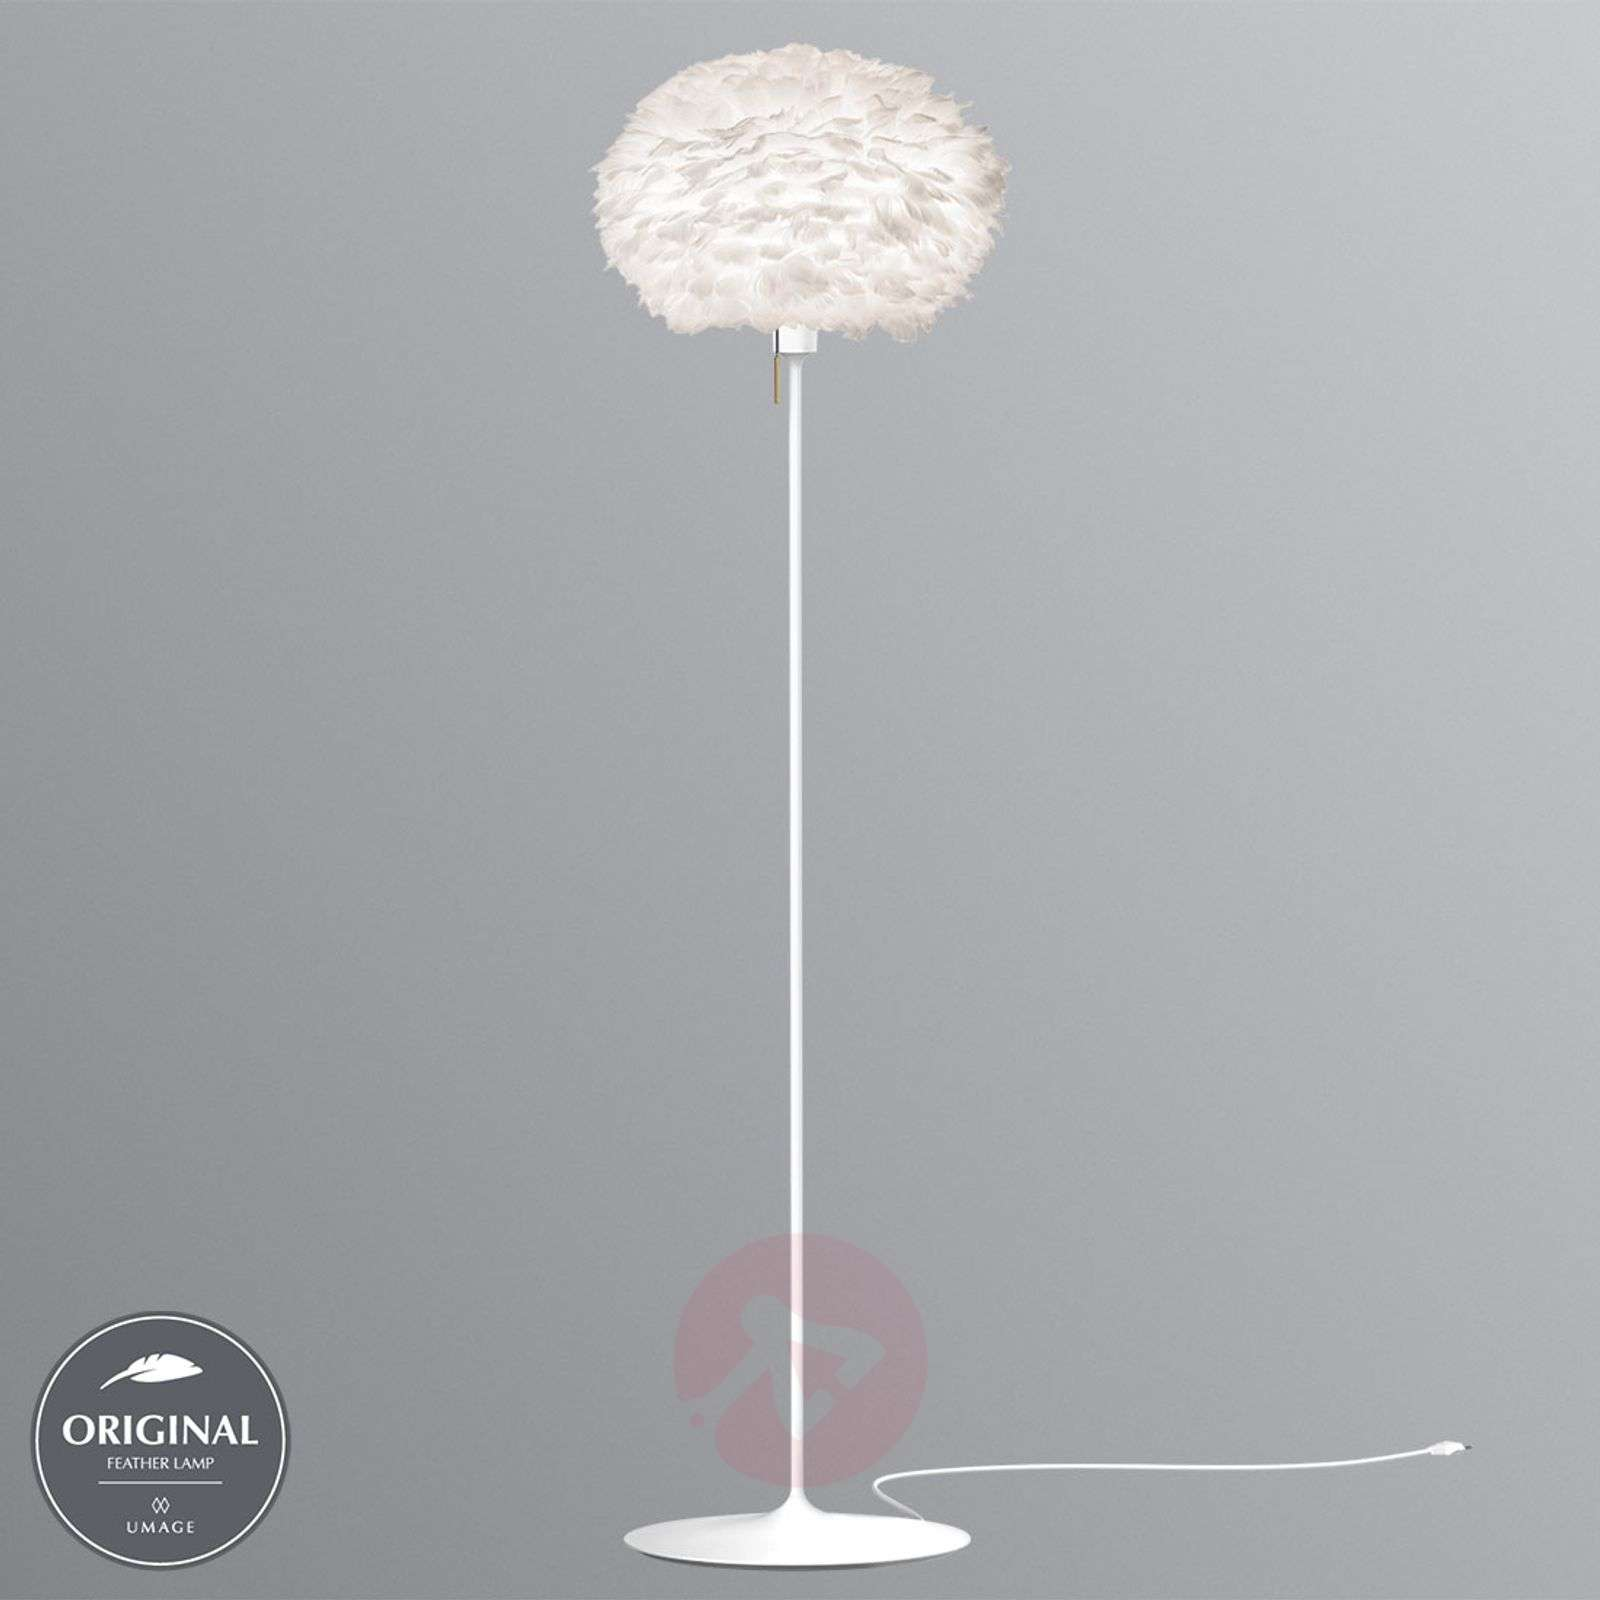 UMAGE Eos medium floor lamp in white-9521115-01